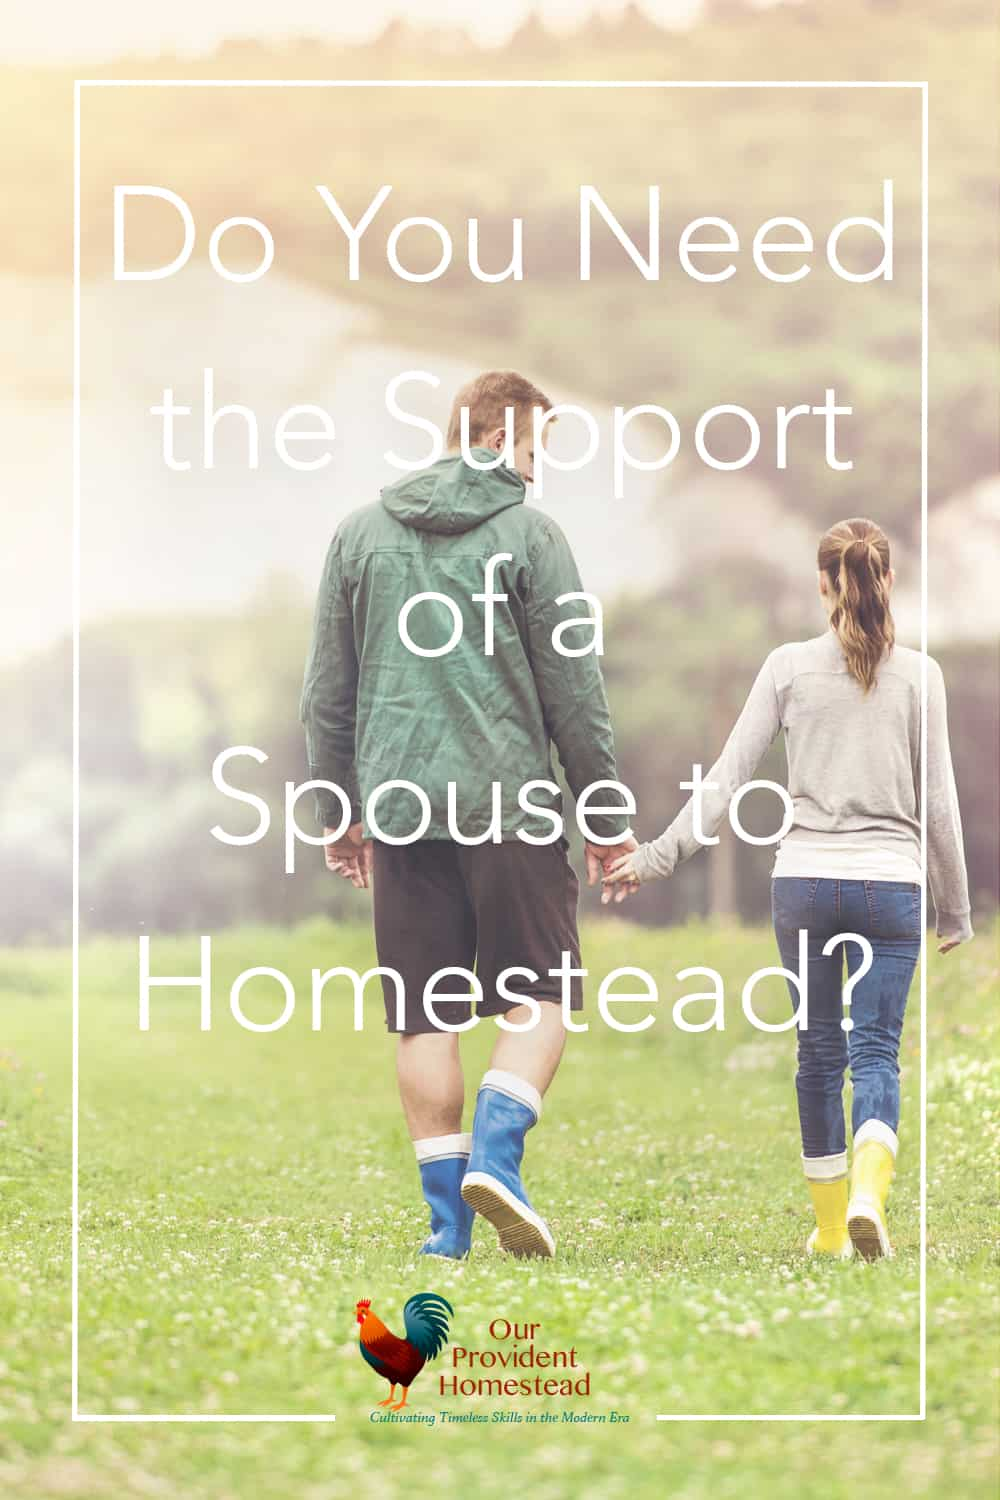 Do You Need the Support of a Spouse to Homestead? Click here to see why we think it is important to have the whole family involved in homesteading. #homesteading #marriage #homesteader